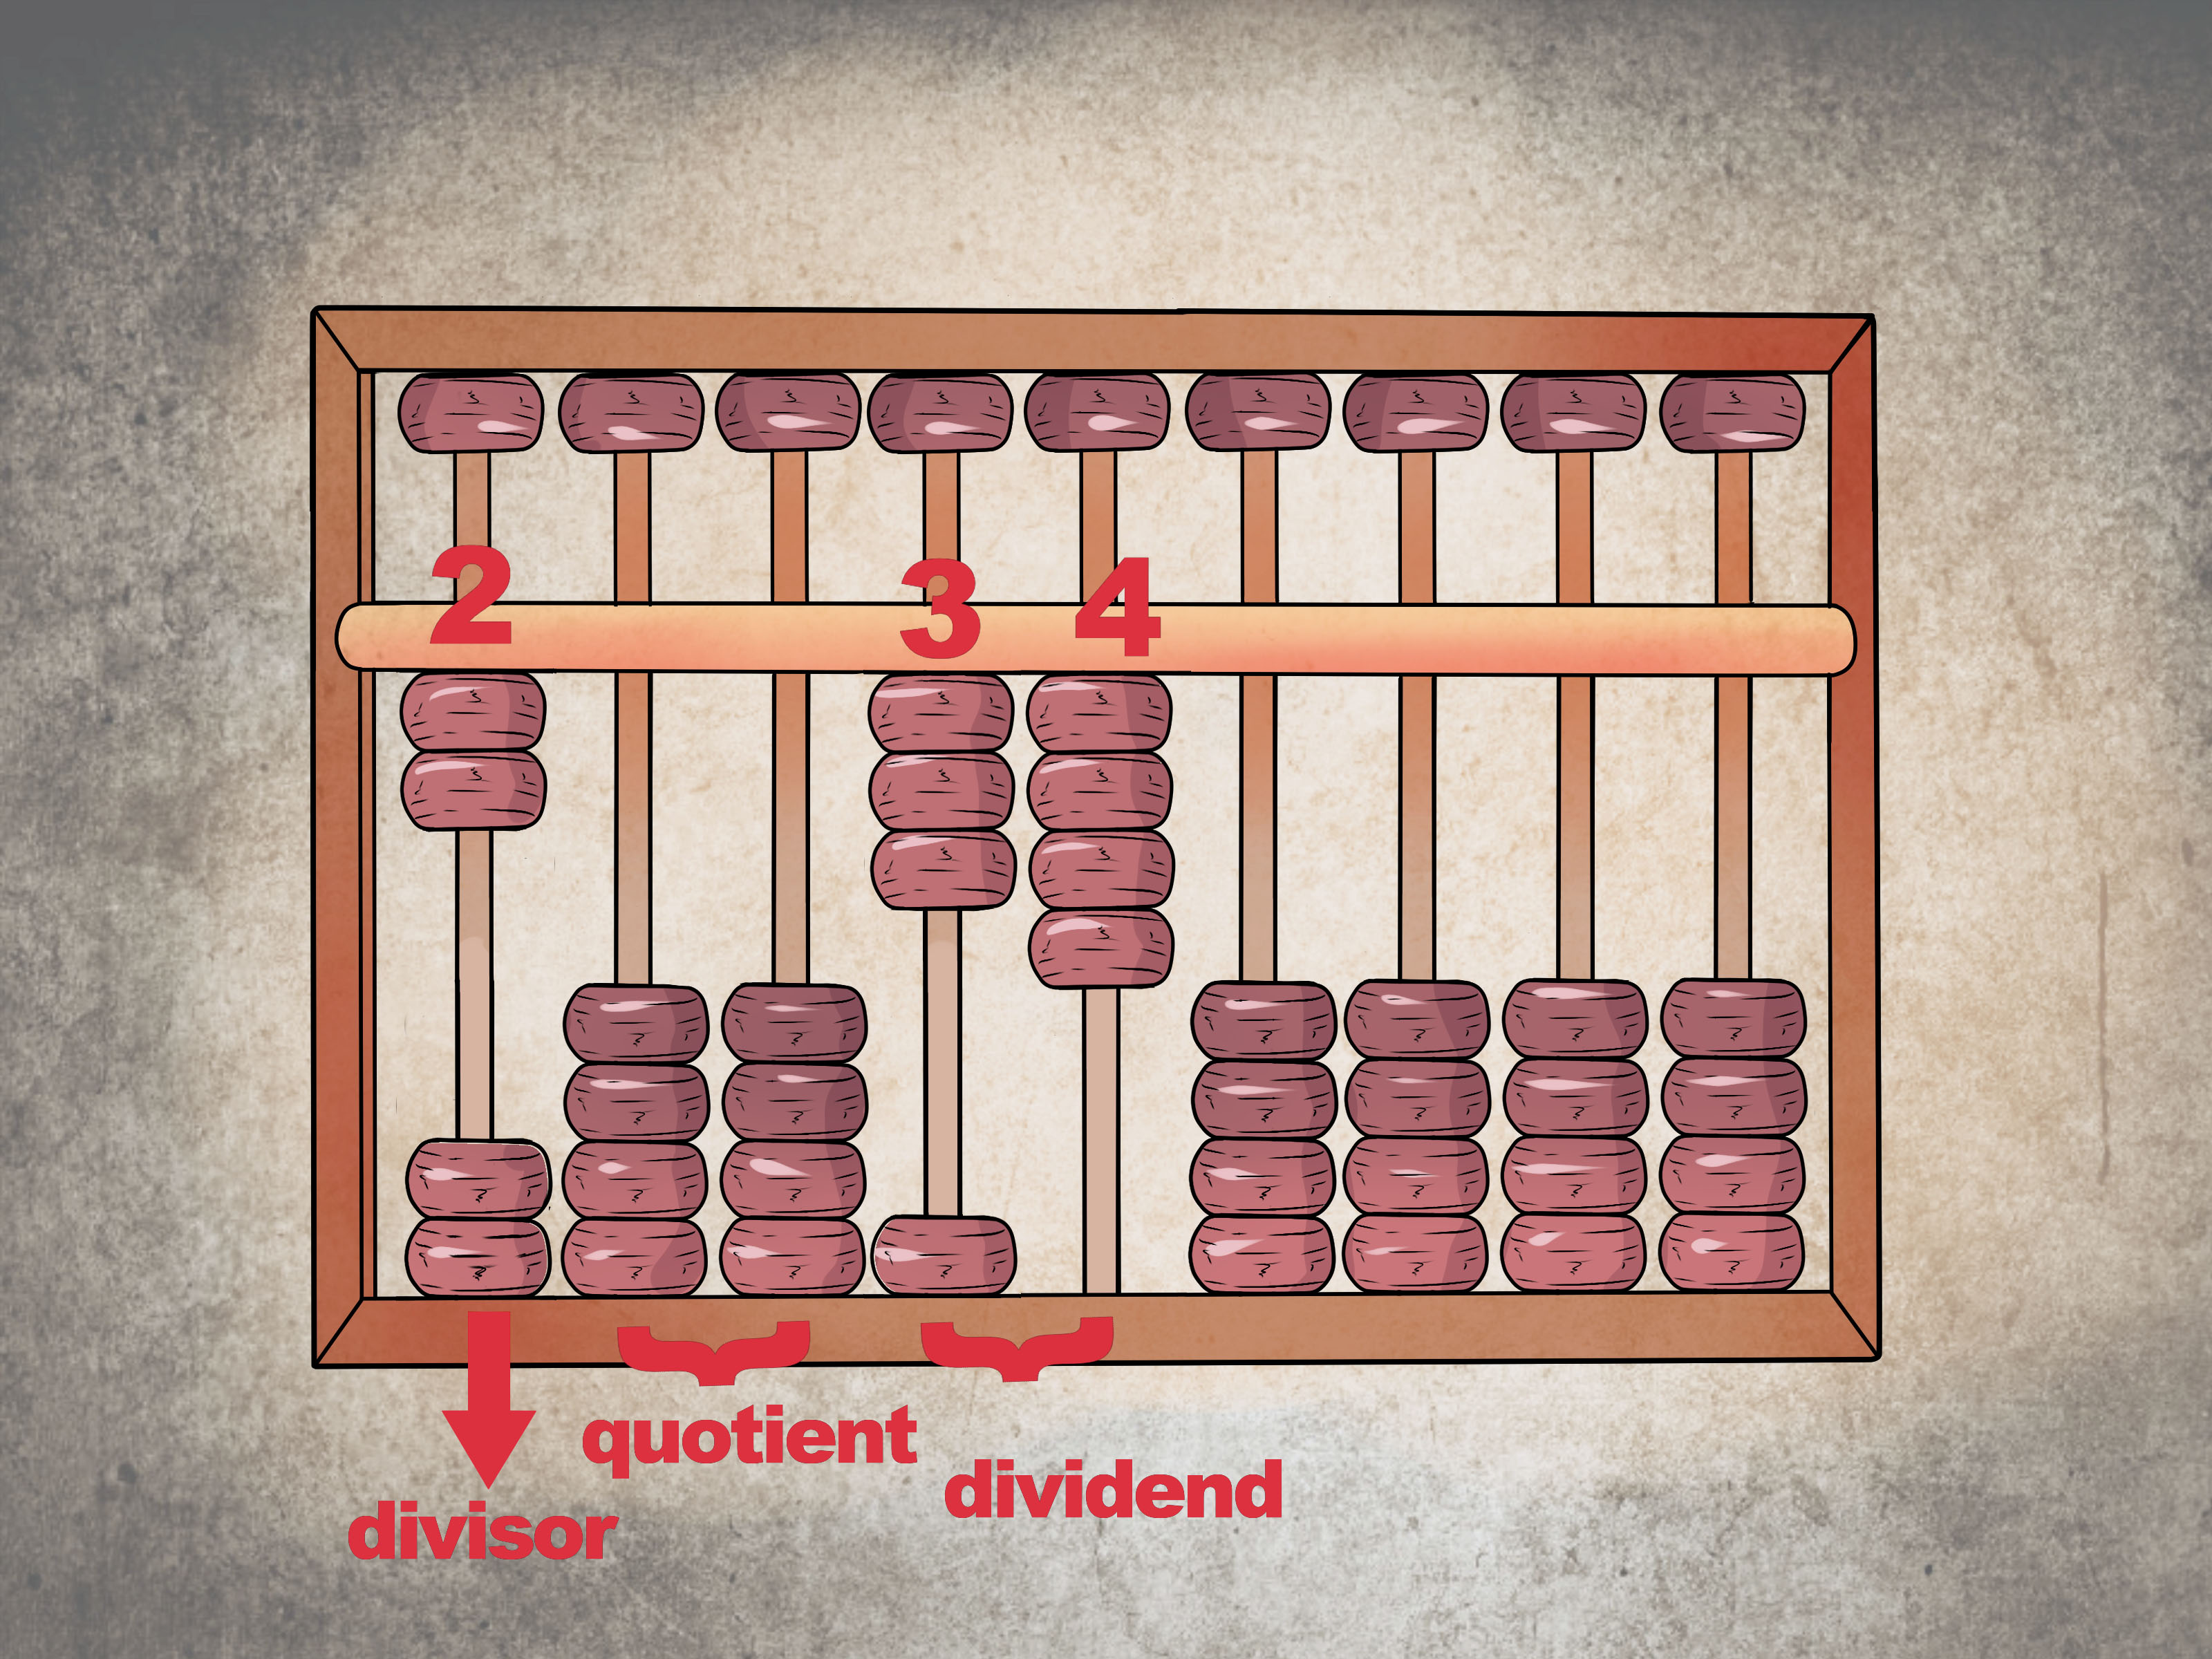 How To Use An Abacus With Pictures